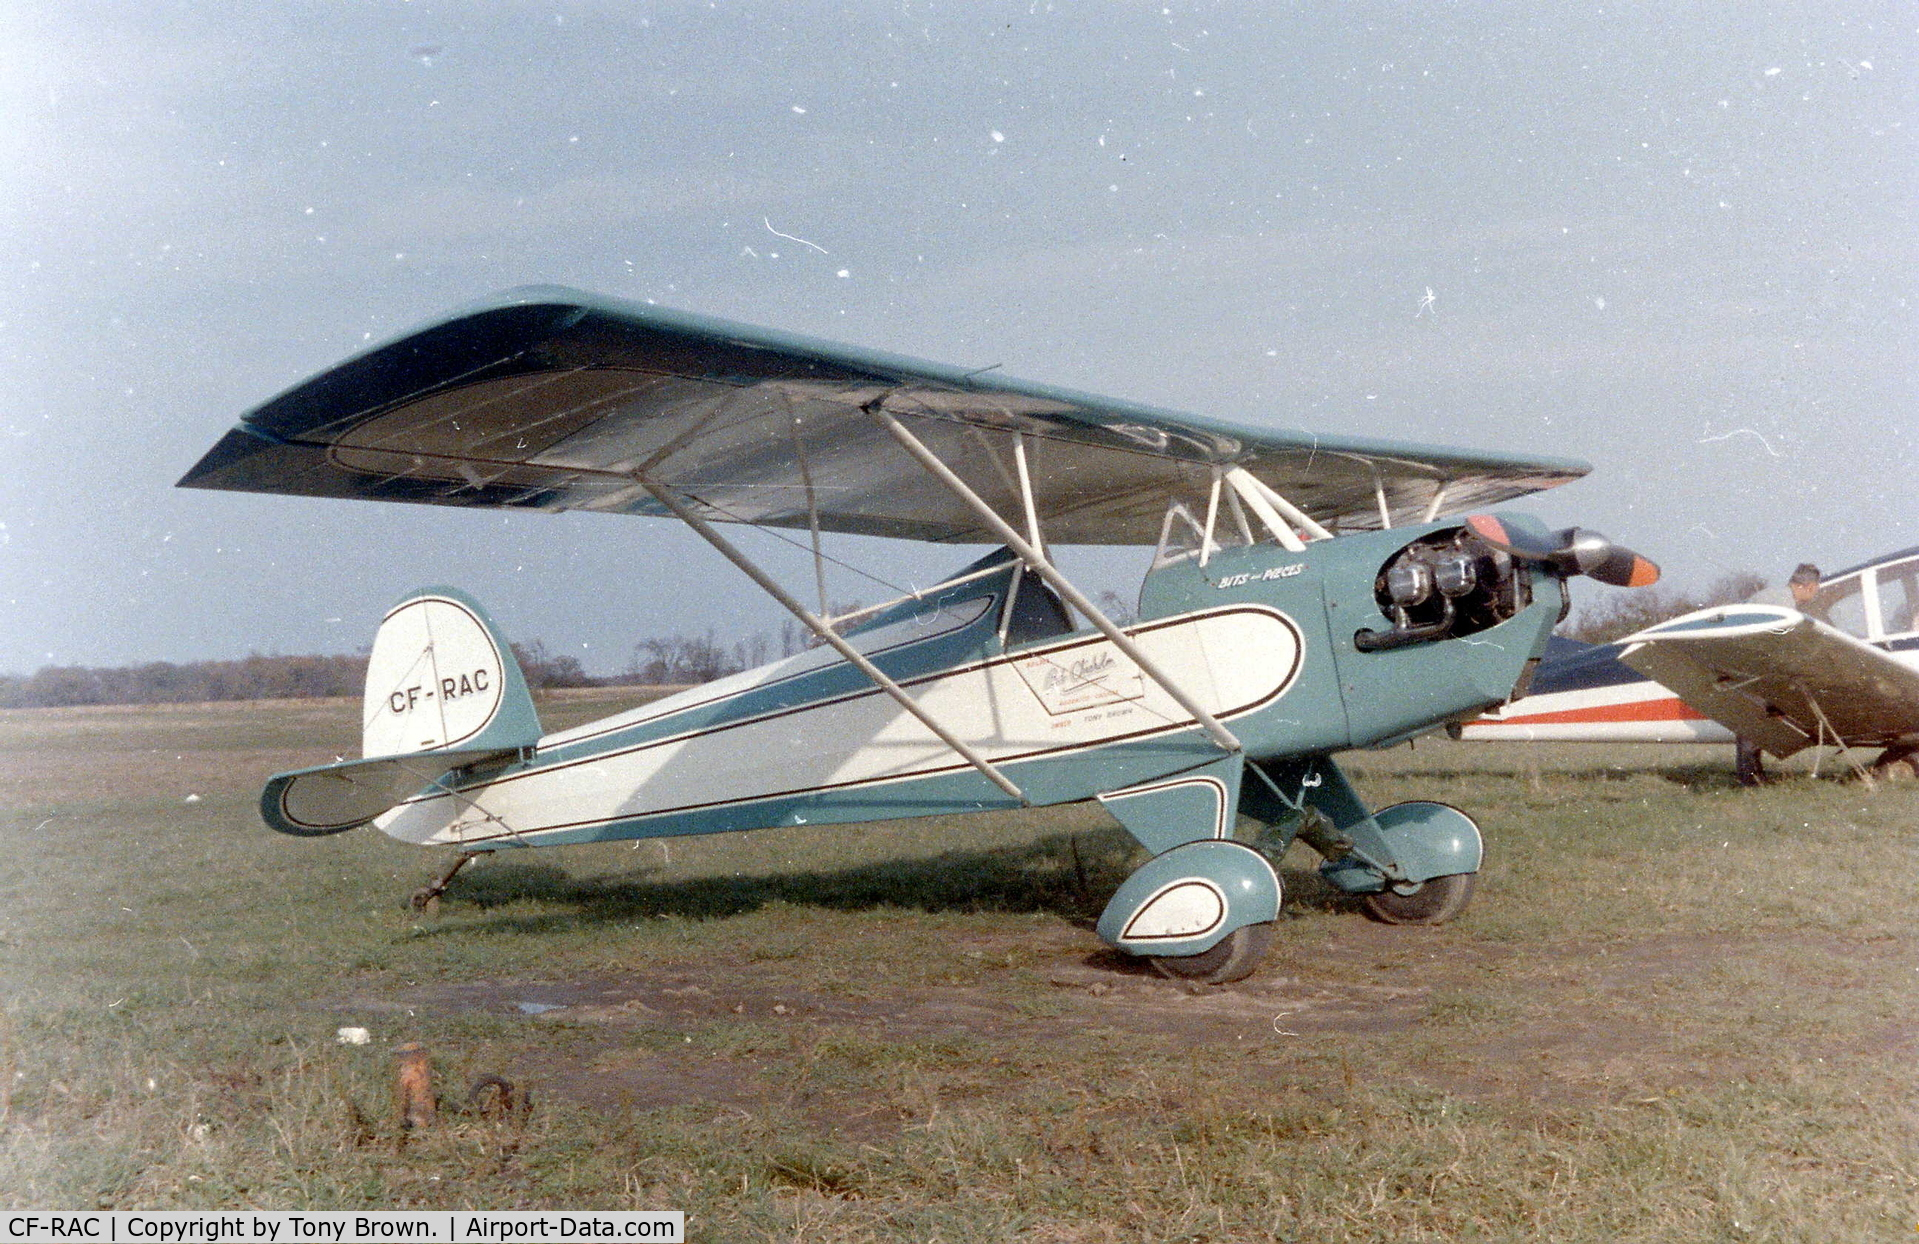 Corbin Baby Ace Aircraft http://www.airport-data.com/aircraft/photo/000423245.html